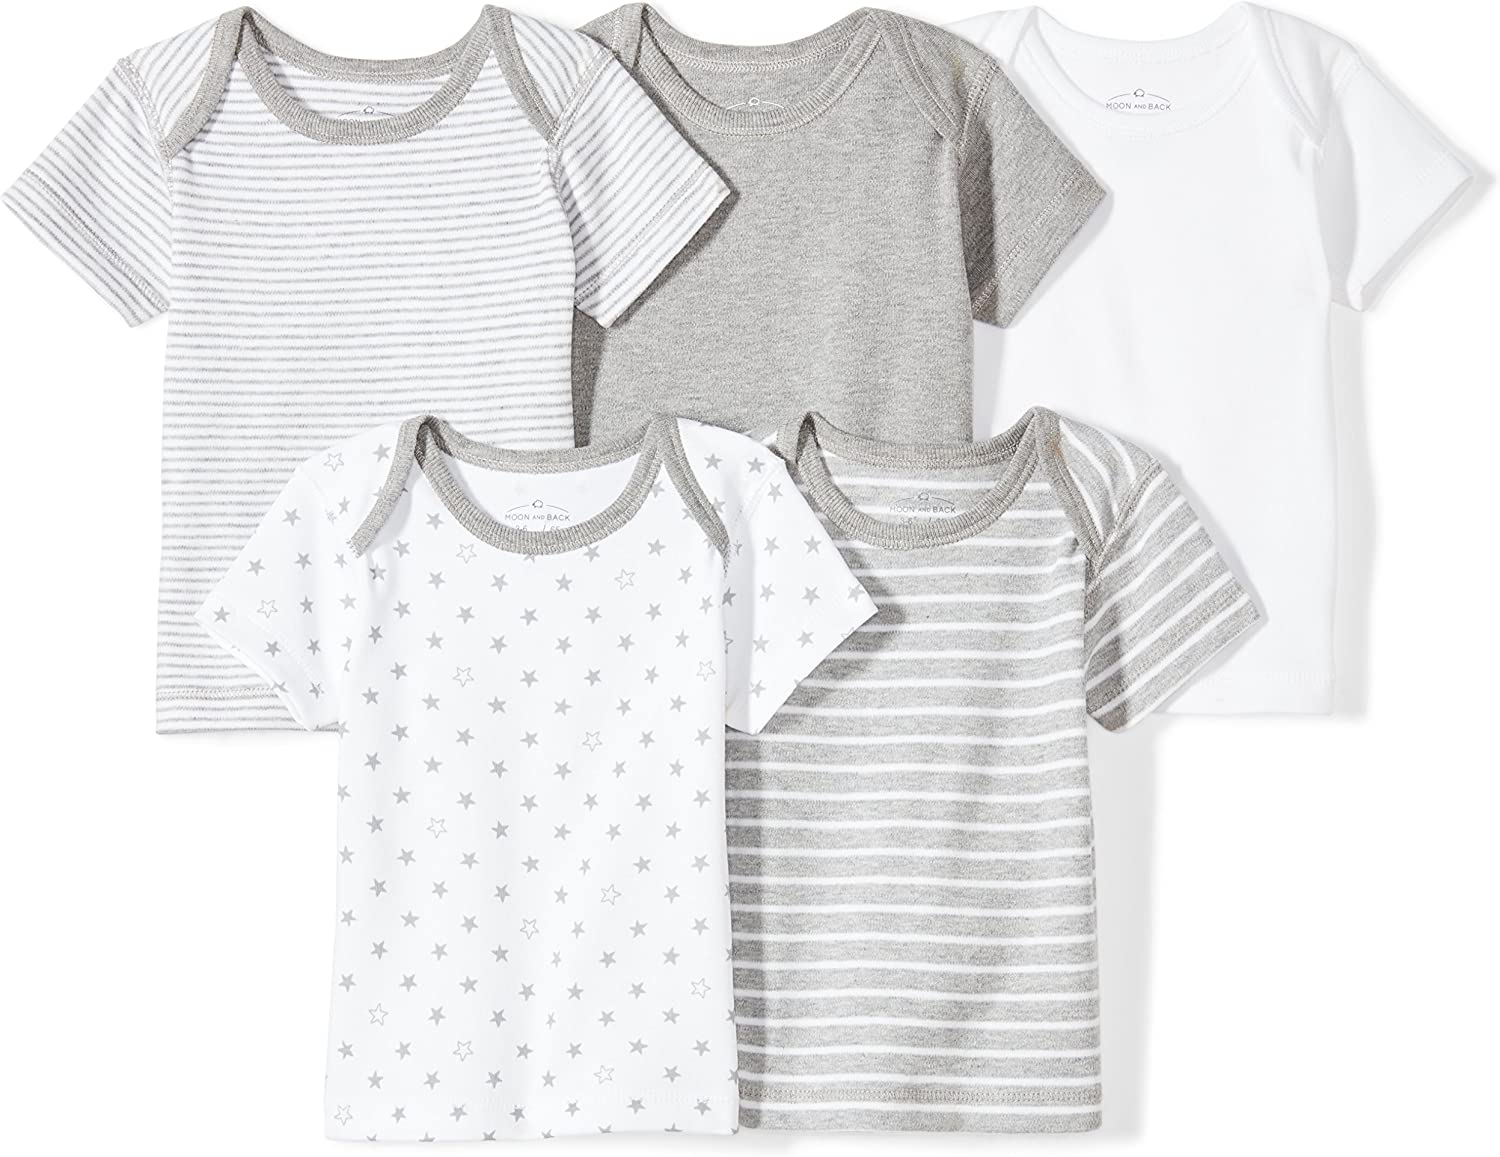 Moon and Back Baby Set of 5 Organic Crewneck Short-Sleeve Shirts